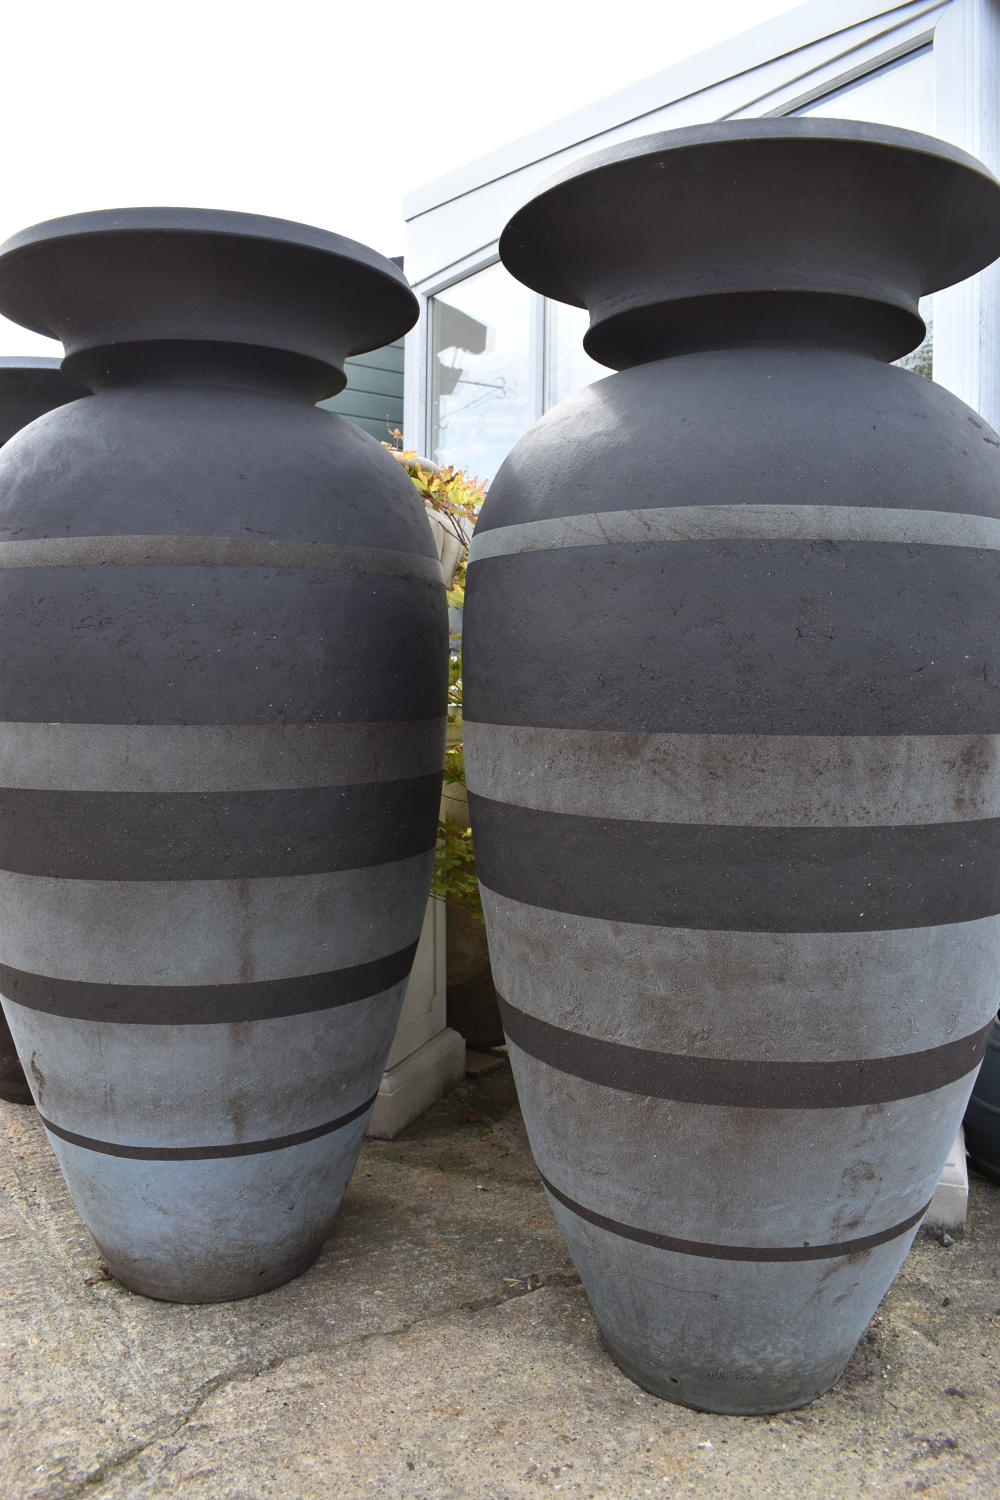 Pair of Enigma pots by Philip Simmonds 128 cm